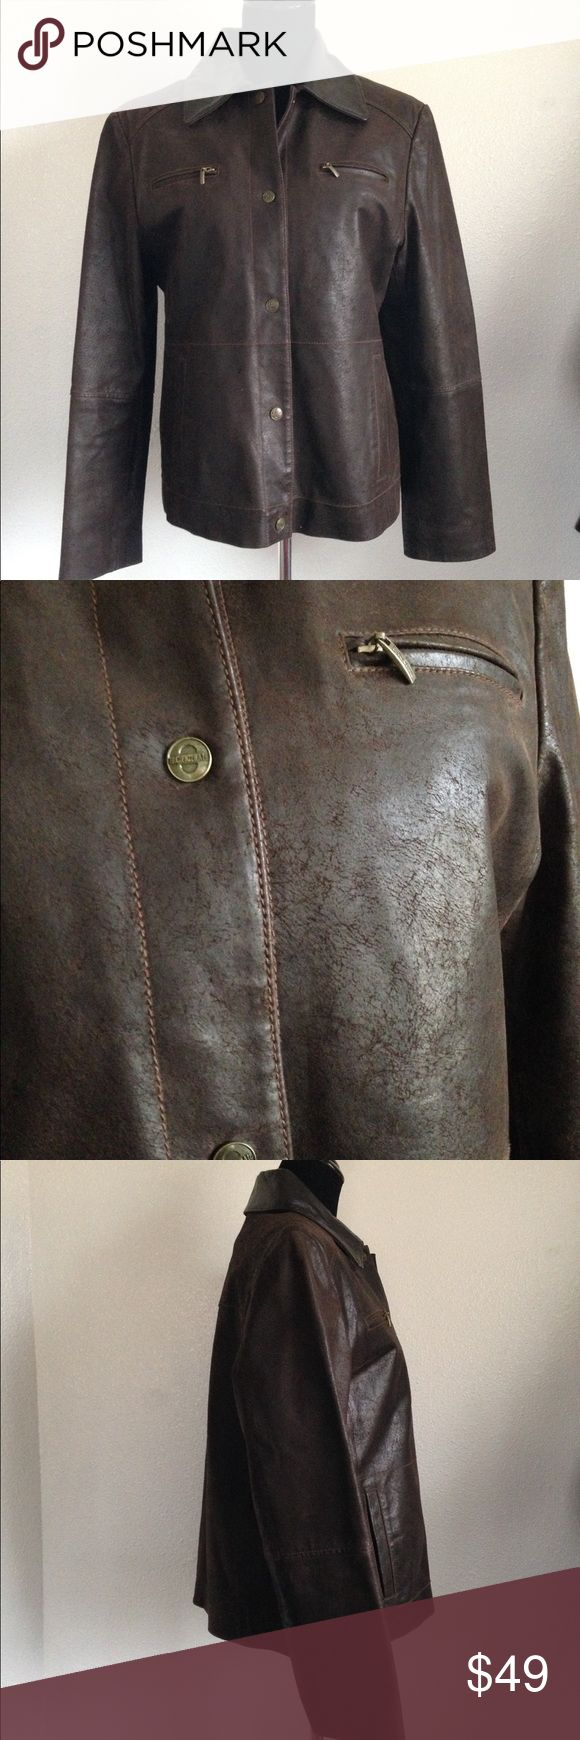 Ladies Pacific Trail Leather Jacket Ladies brown button down leather jacket. 2 side pockets and 2 front zip pockets. Buttoned on liner. Good used condition. No noticeable stains etc. Pacific Trail Jackets & Coats